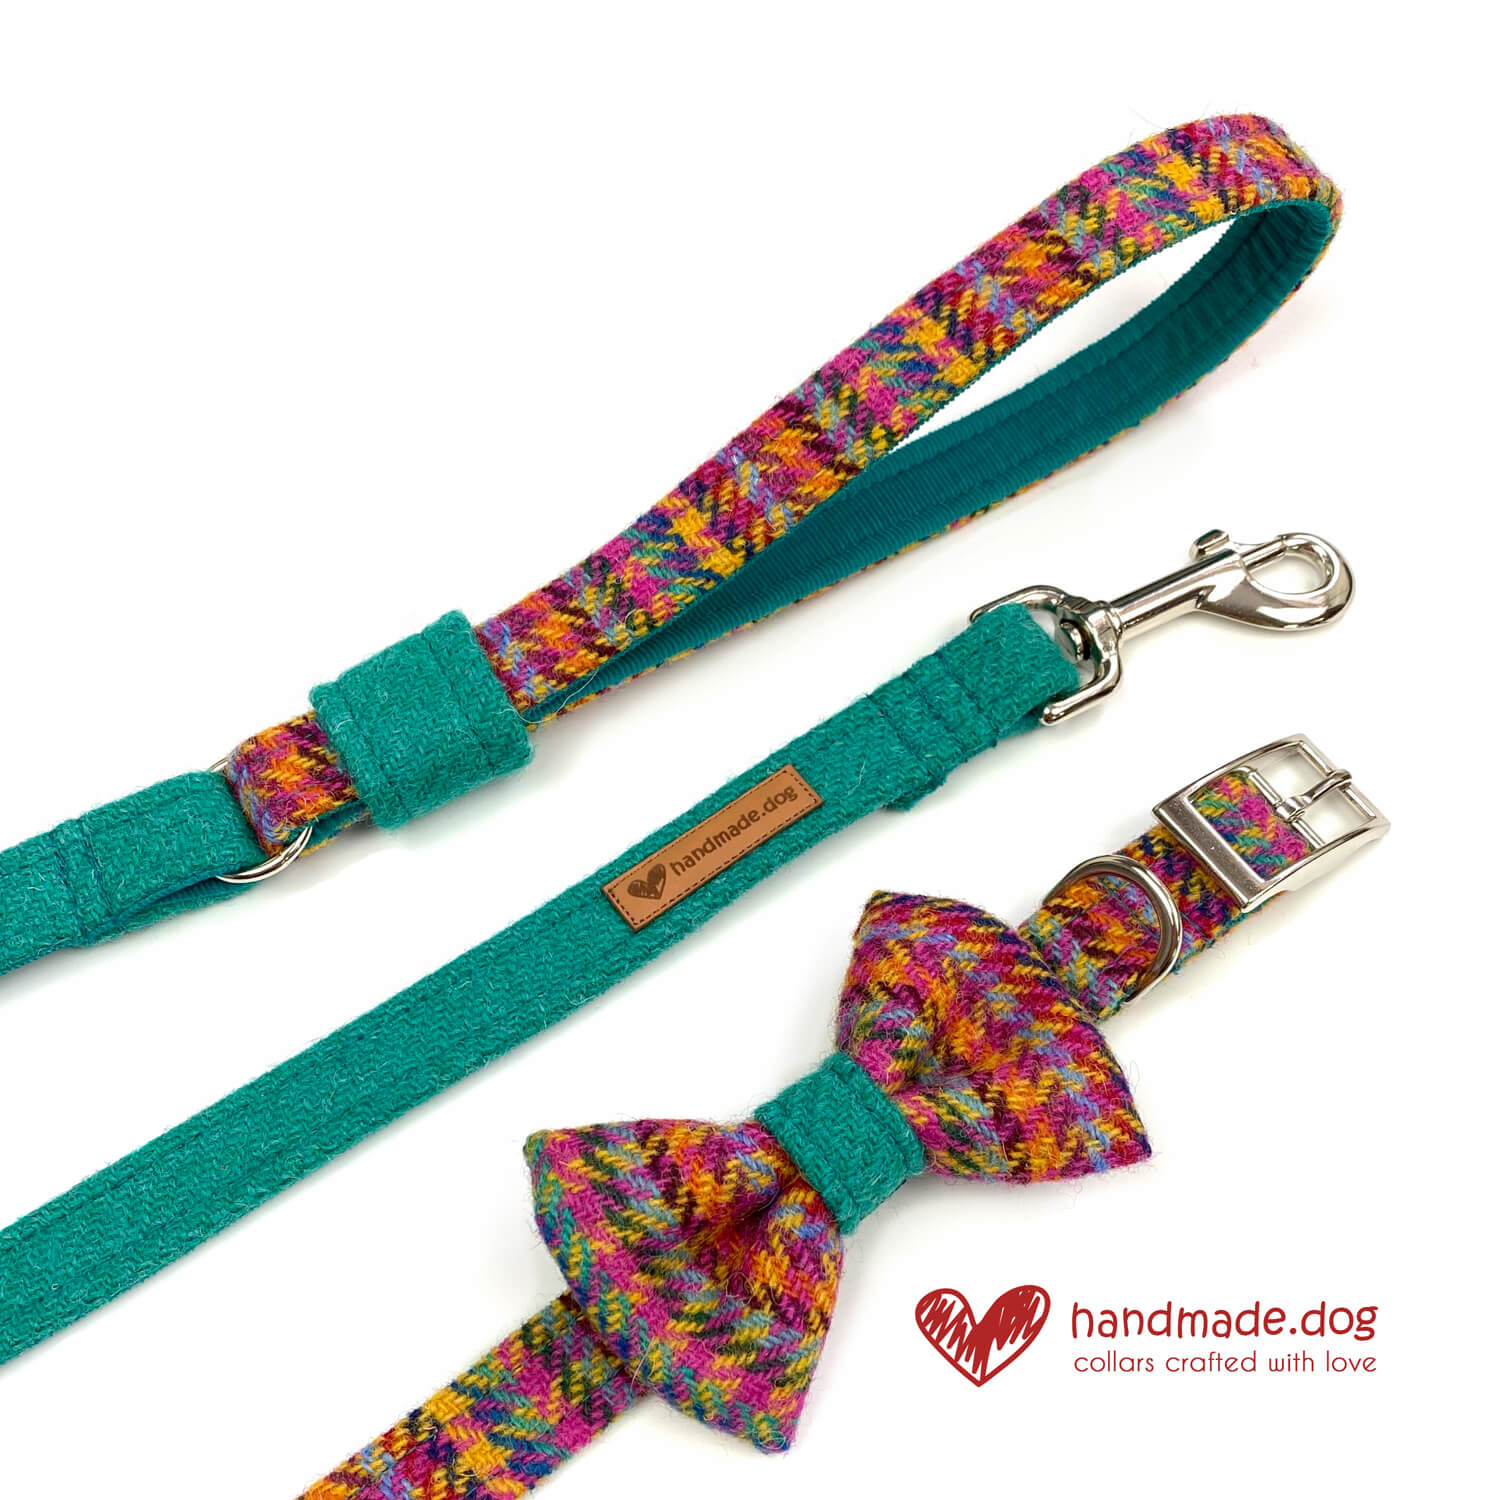 Limited Edition 'Harris Tweed' Rio Range including dog collar, dog lead and god dickie bow.